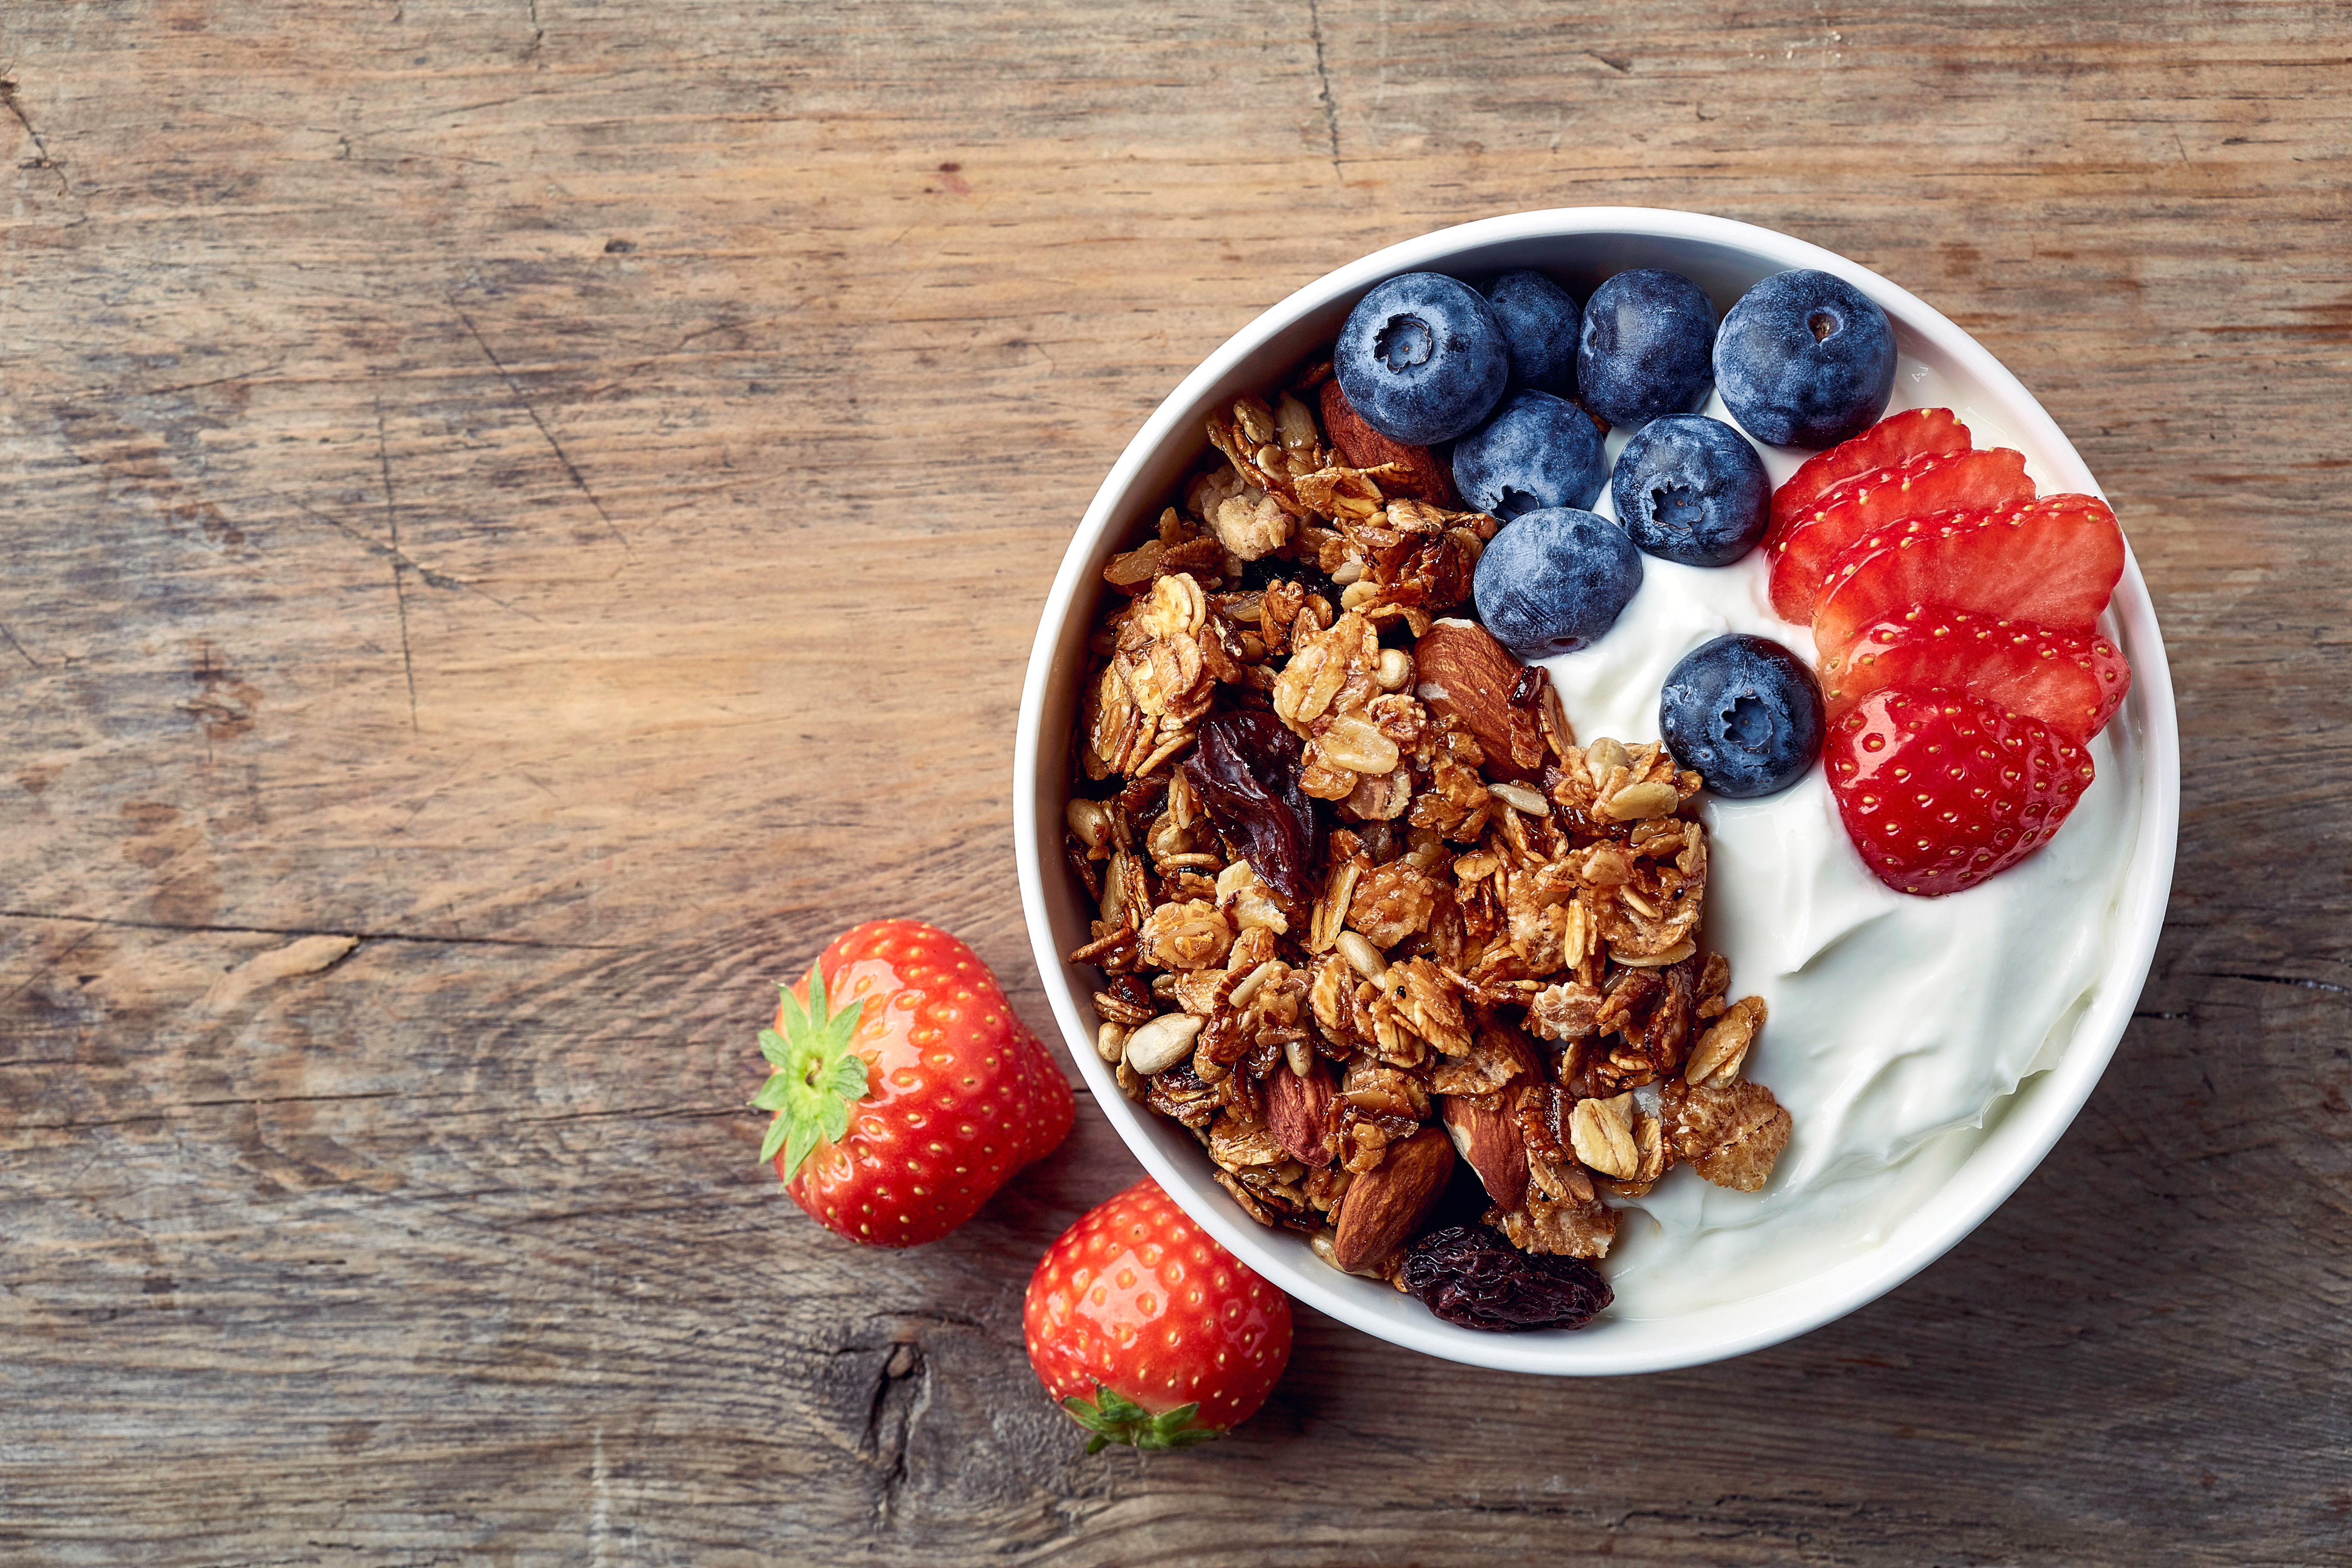 How Many Grams Of Protein Are In 2 Cups Of Yogurt Healthy Eating